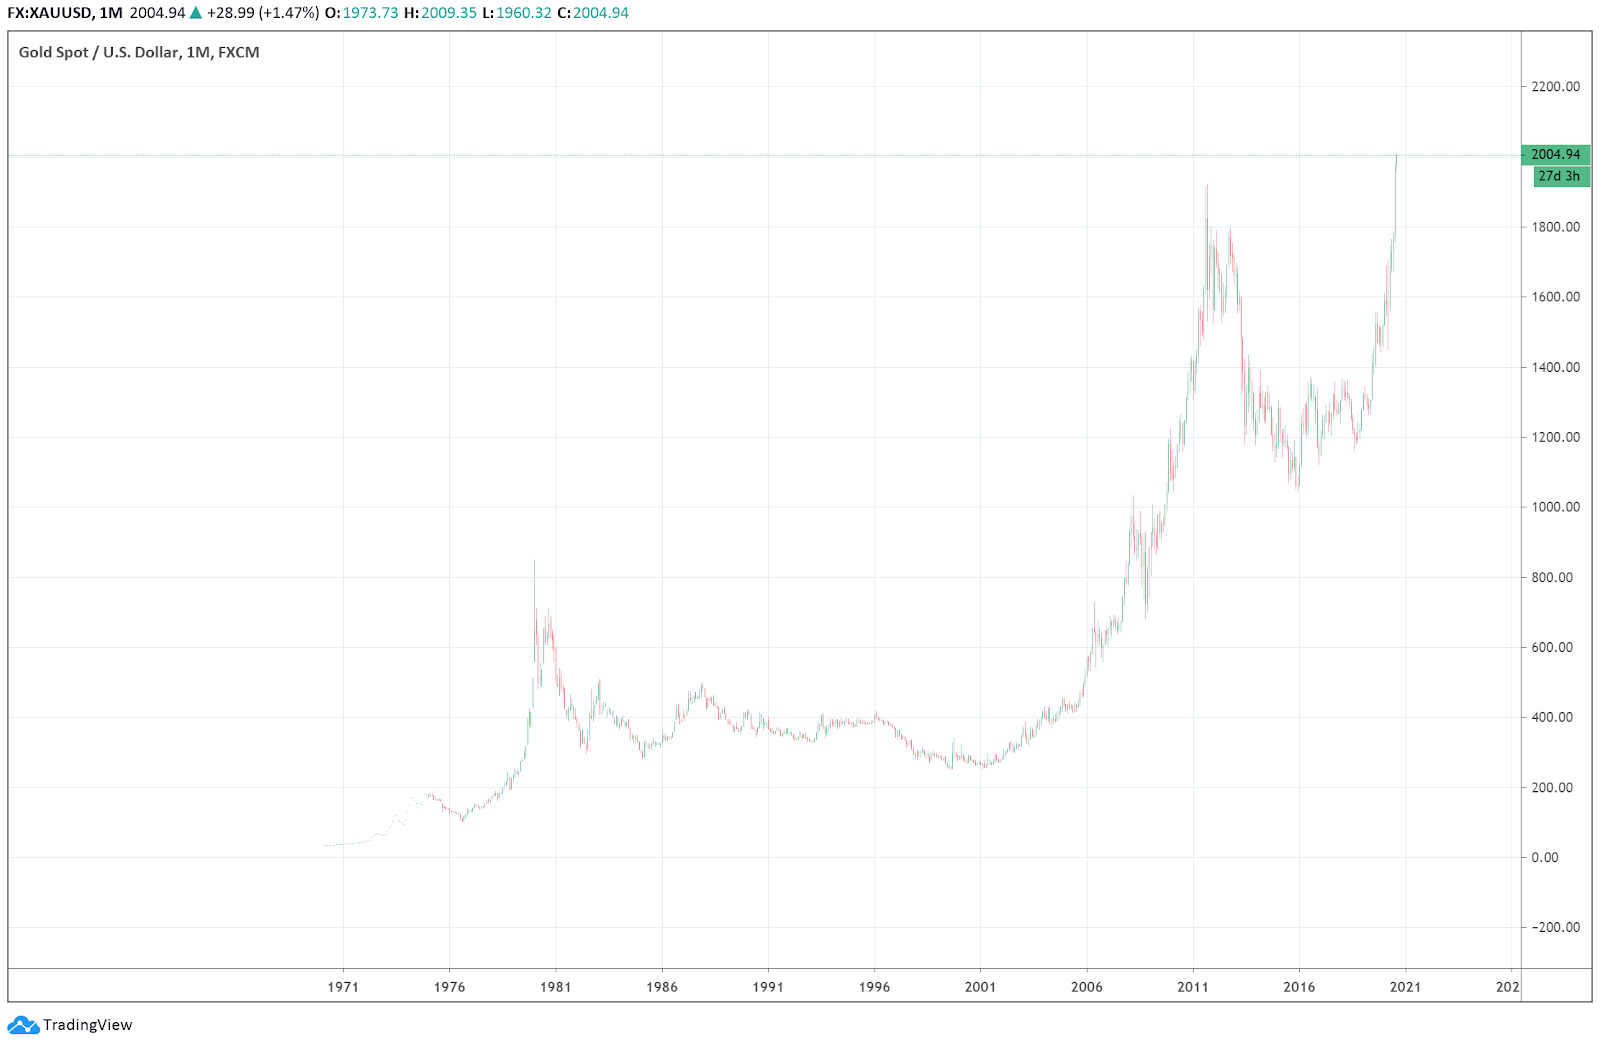 The monthly price chart of gold